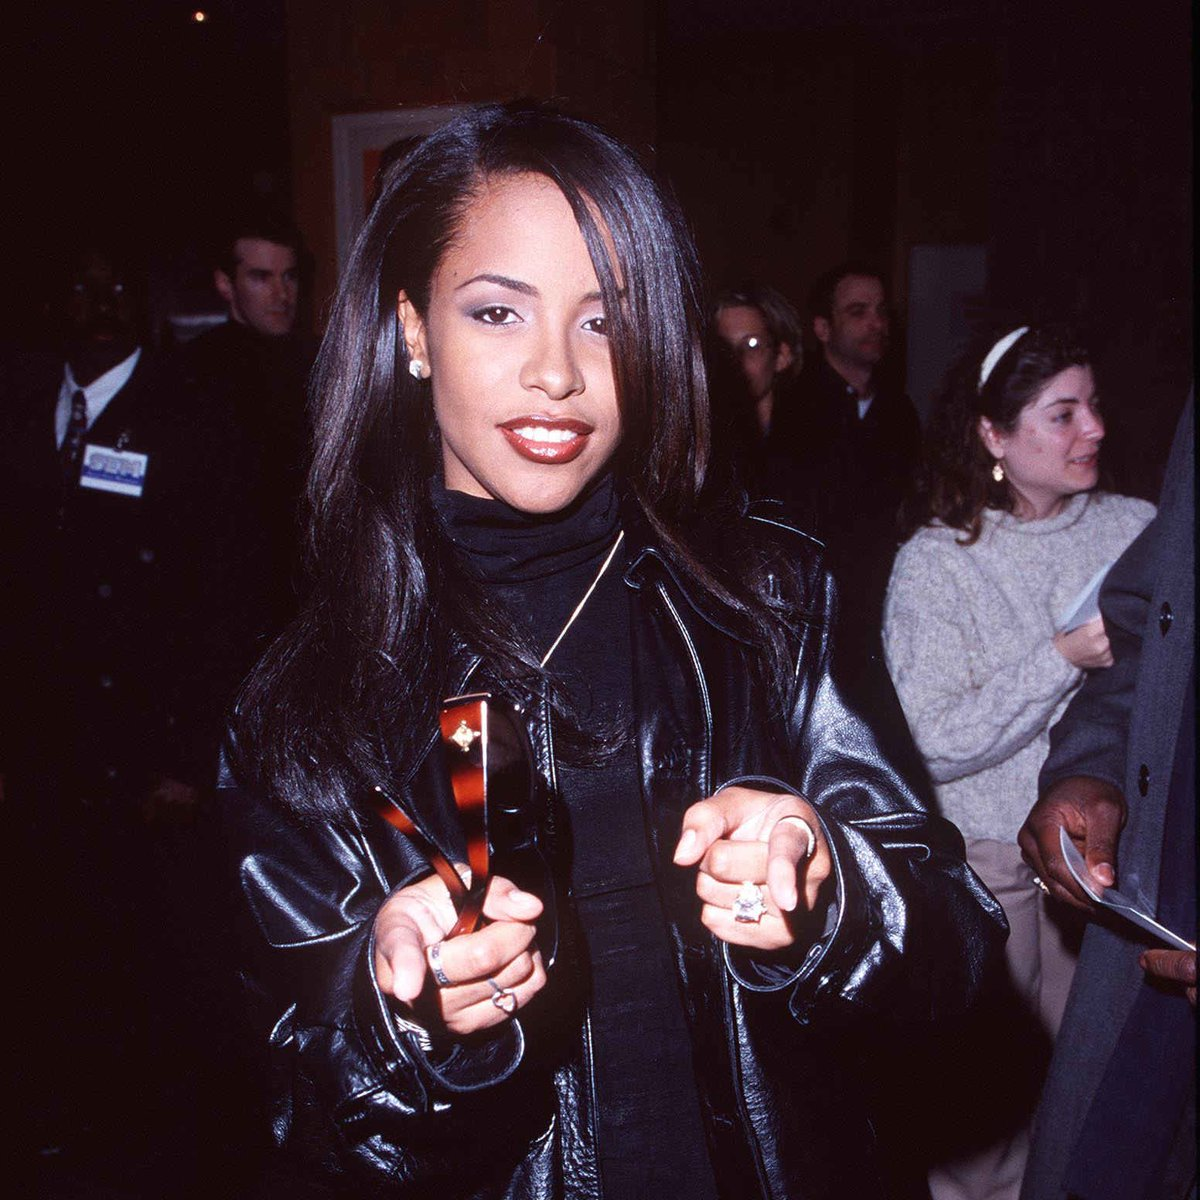 Remembering Aaliyah on what would've been her 37th birthday. Read her bio: https://t.co/BRH835UOtr @AaliyahHaughton https://t.co/q5iAs4bw2f